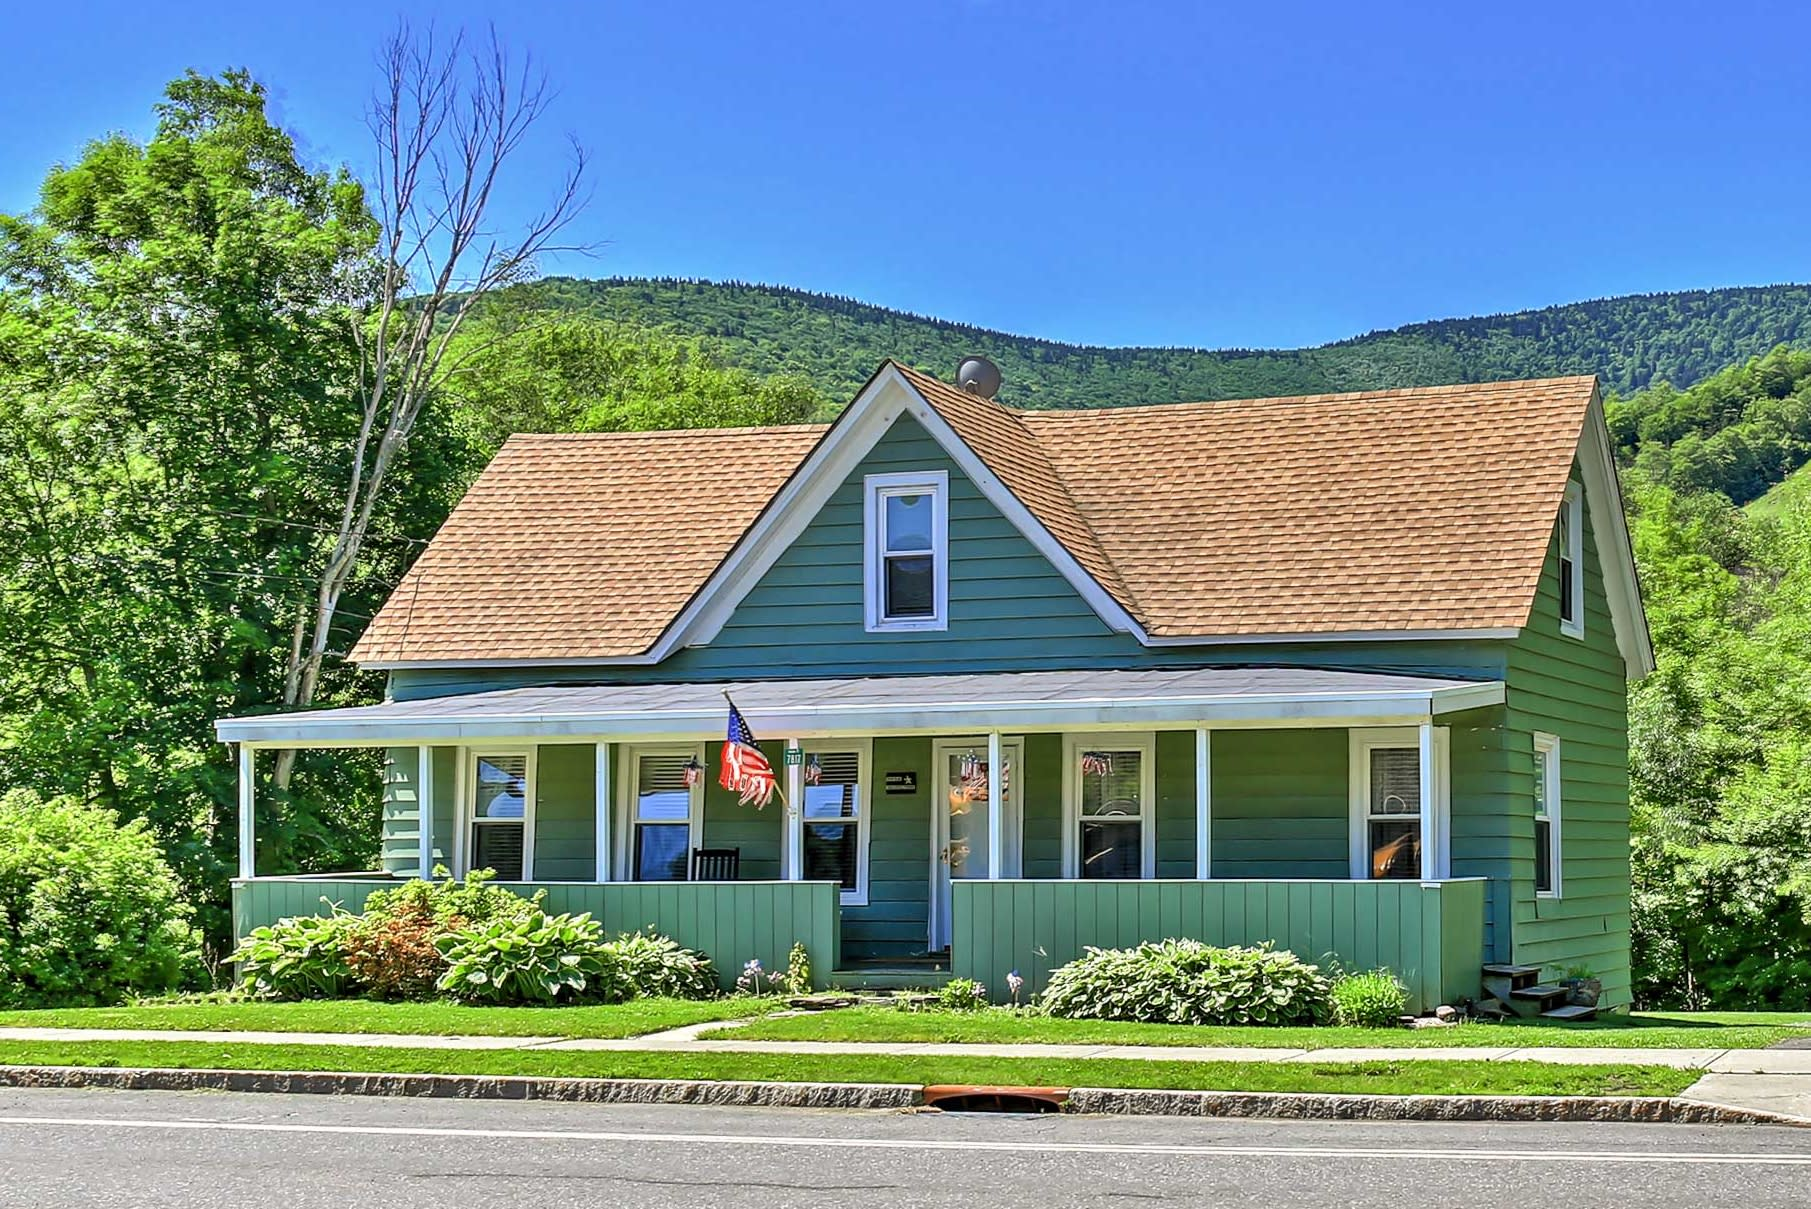 Plan your next New York escape to this 5-bedroom, 2-bathroom vacation rental house in Hunter.